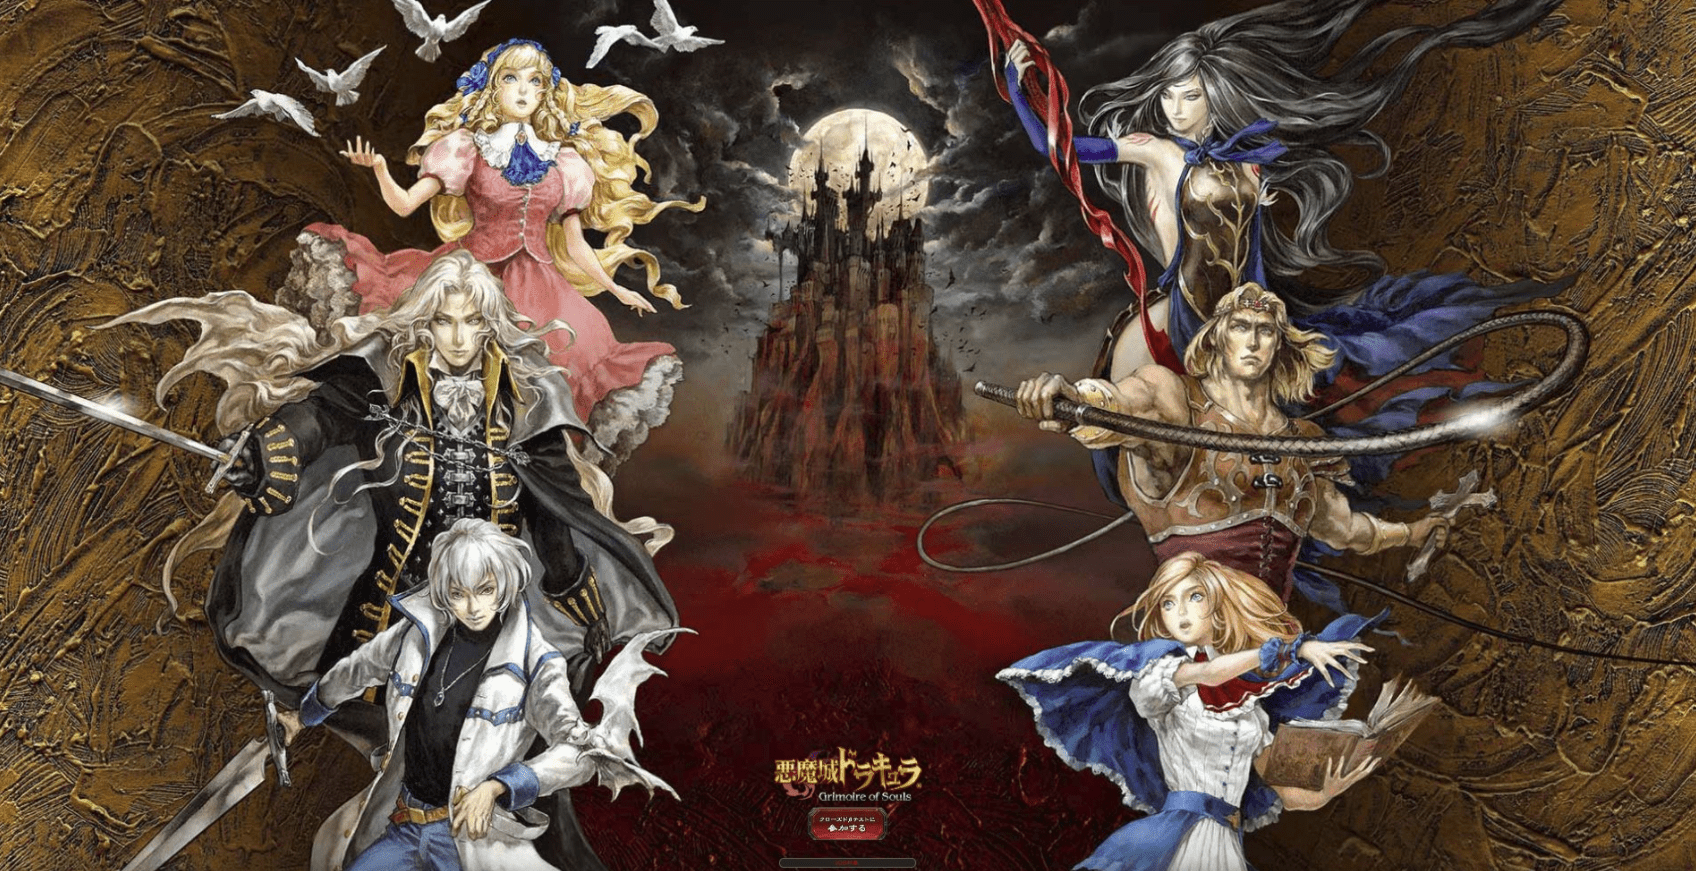 Konami Announces New Castlevania Game…For Mobile